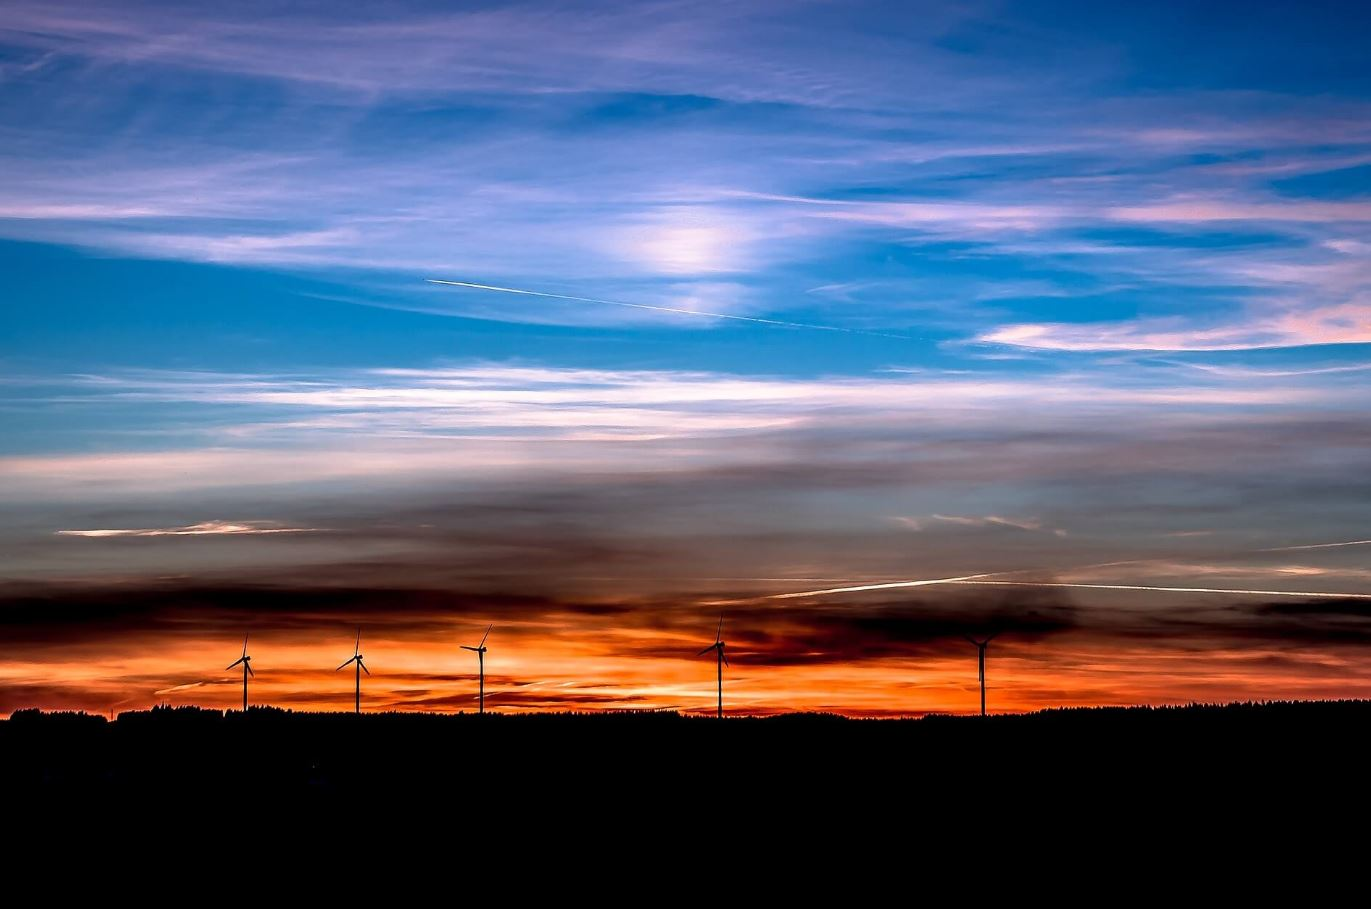 75% of the energy produced in Castilla-La Mancha was renewable at the end of 2020